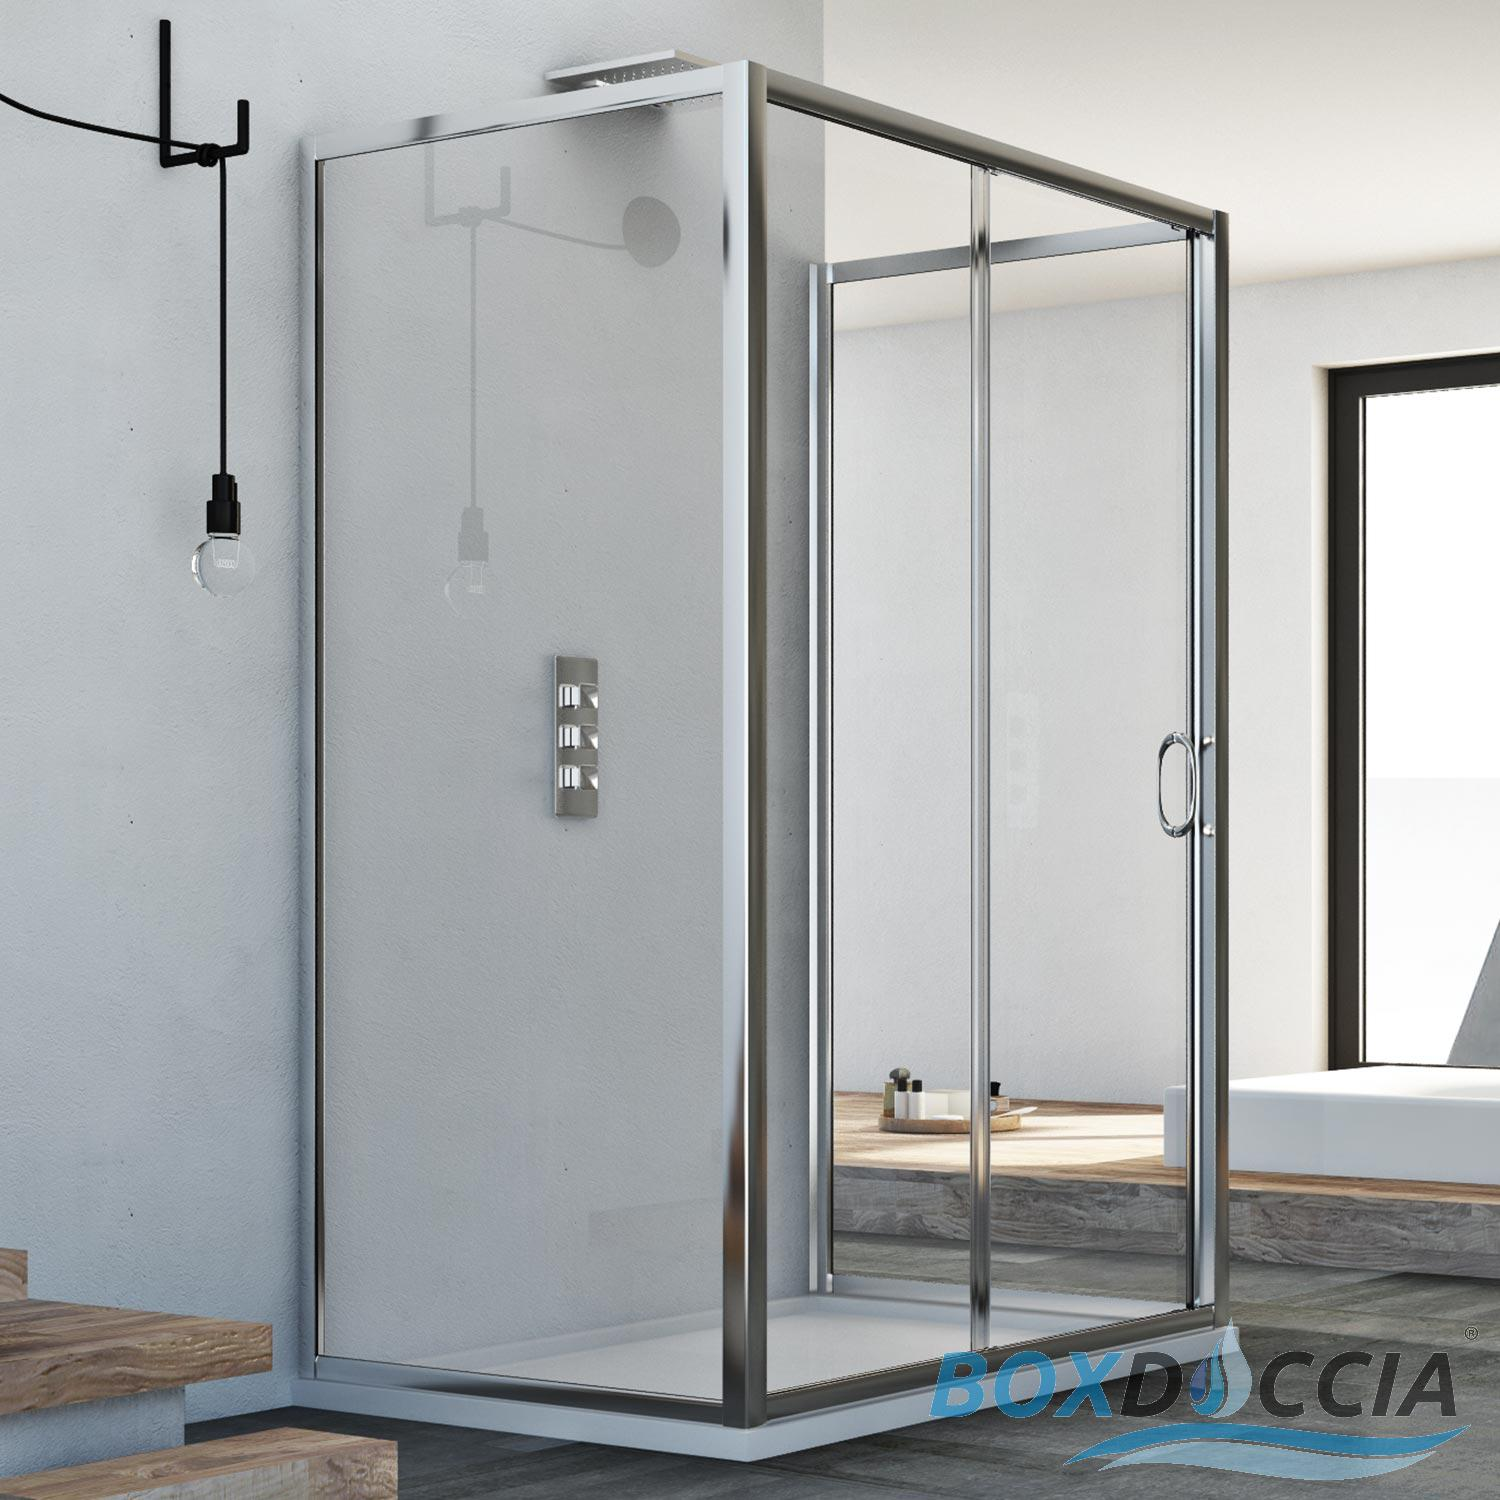 3-SIDED SHOWER ENCLOSURE CUBICLE SLIDING DOOR FRONT OPENING GLASS ...